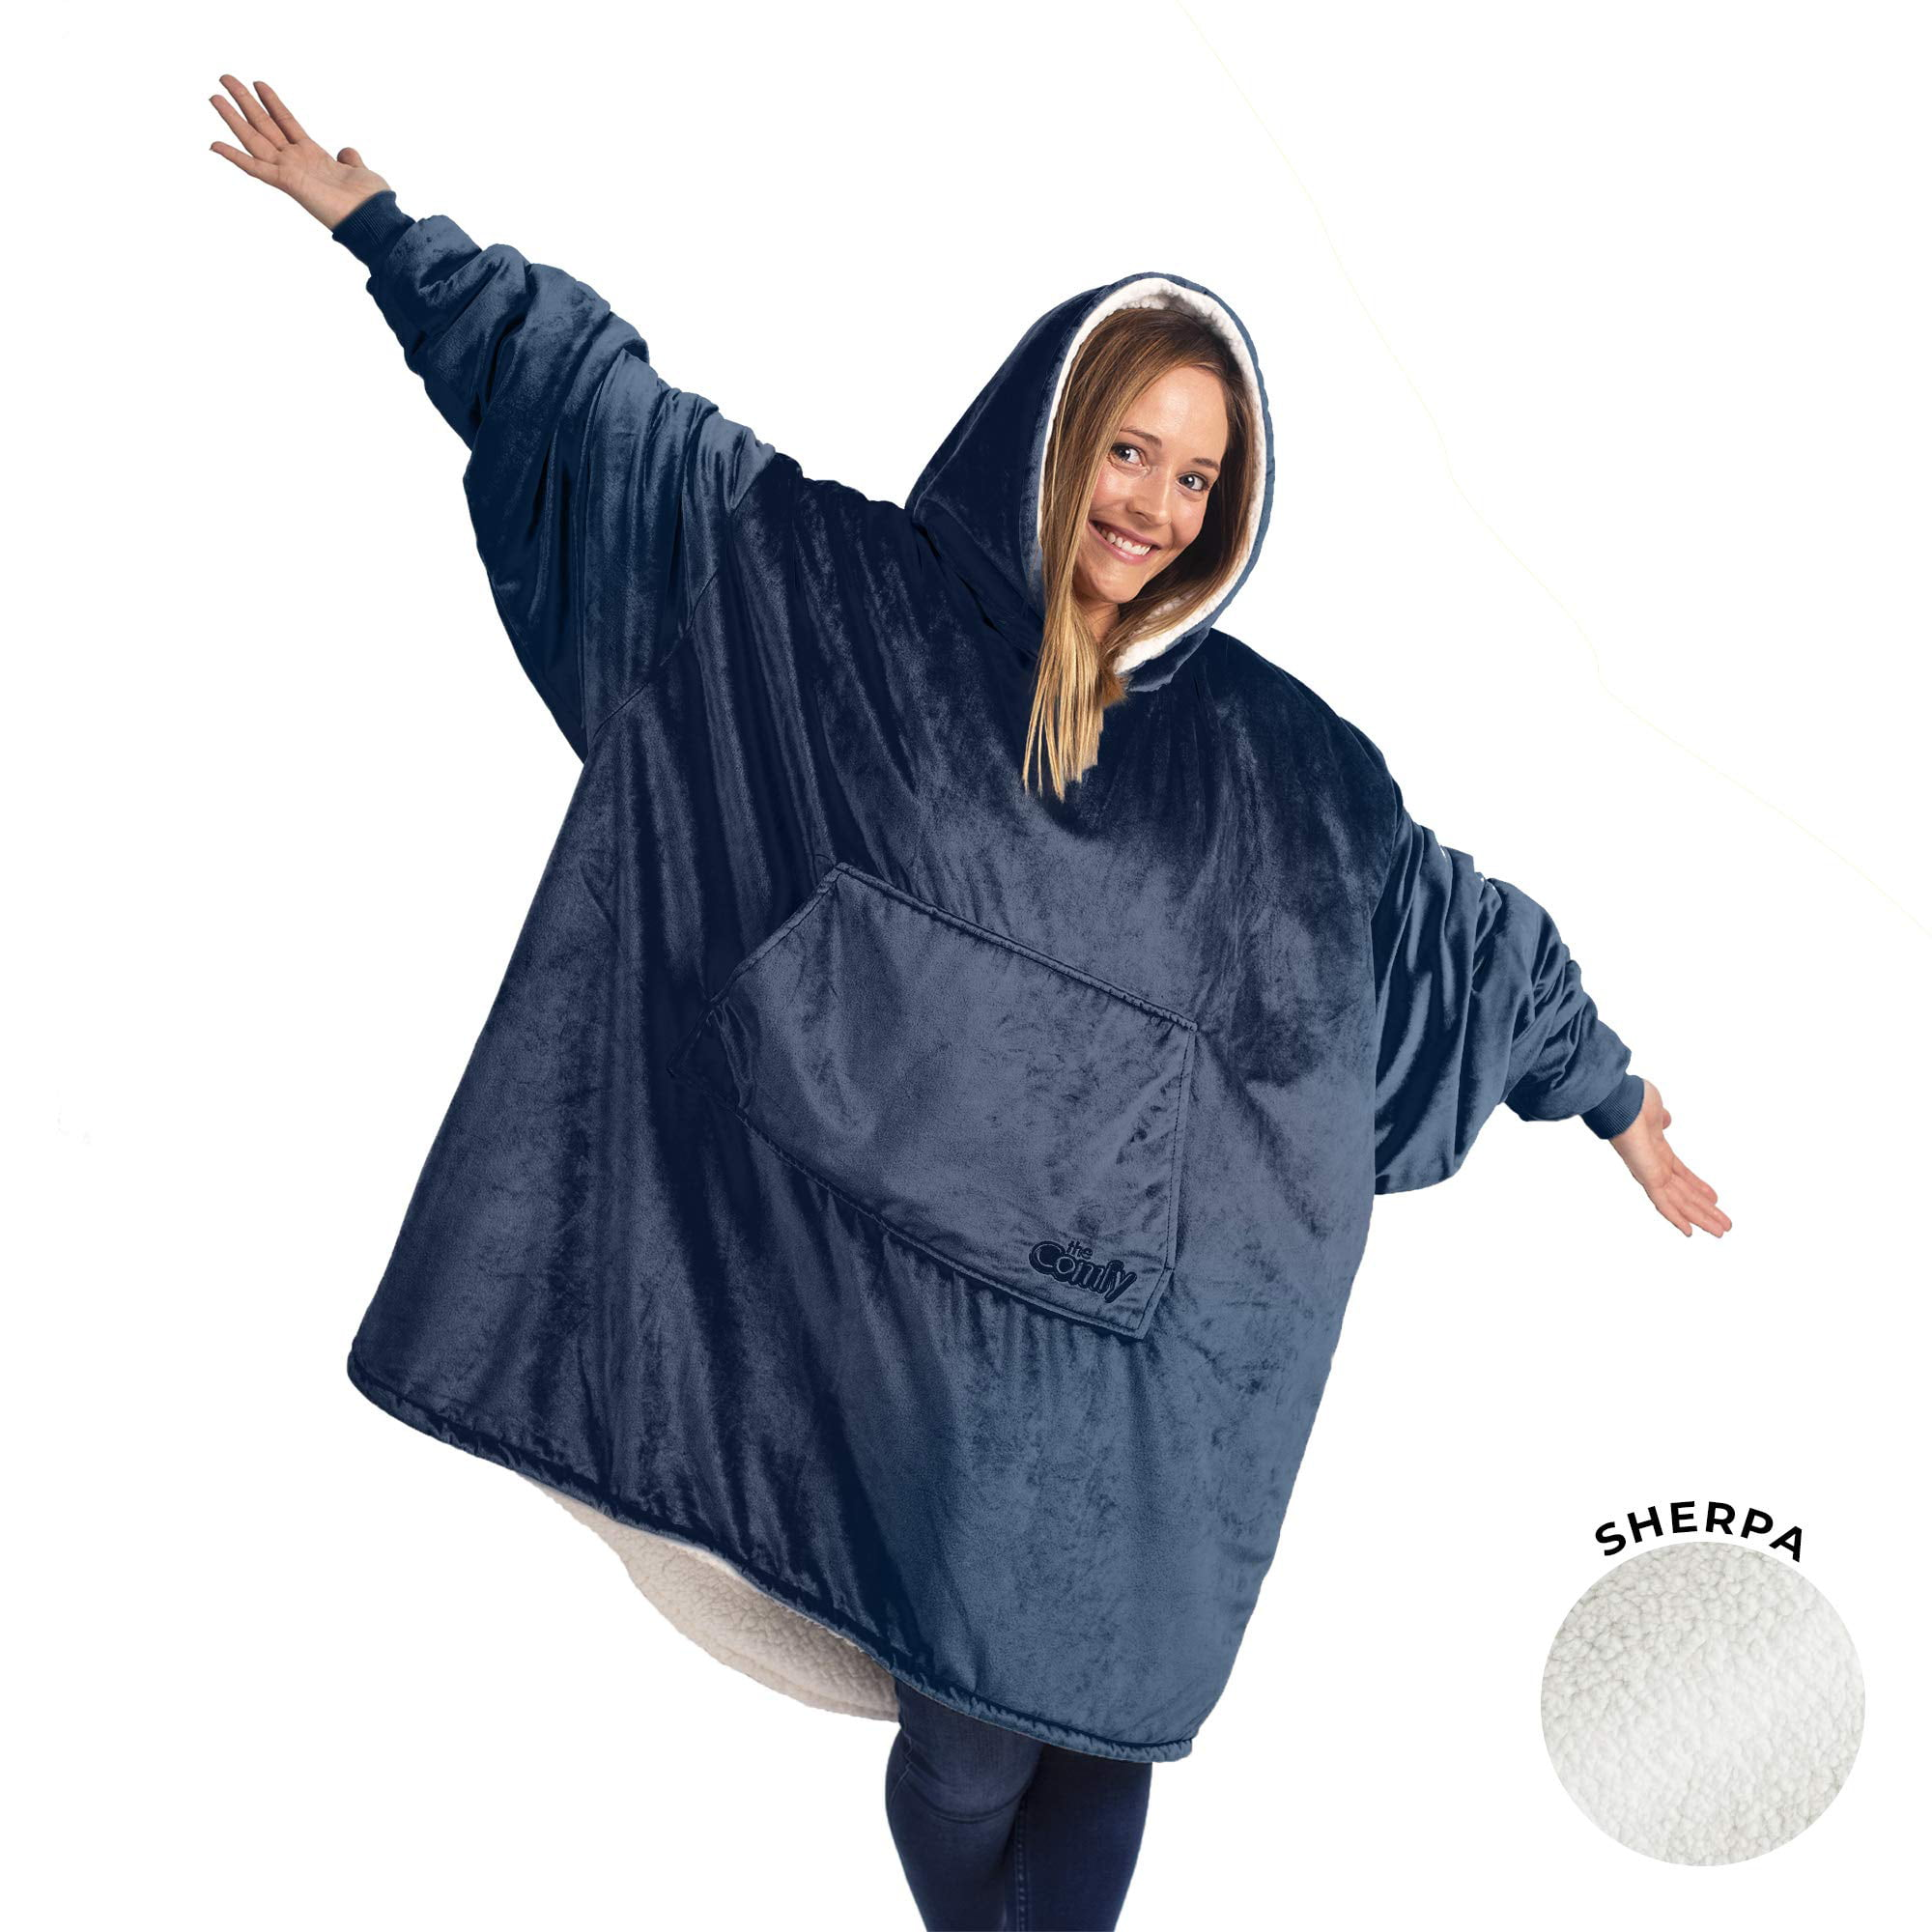 The Comfy The Original Blanket That/'s A Sweatshirt Blanket One Size Fits Most